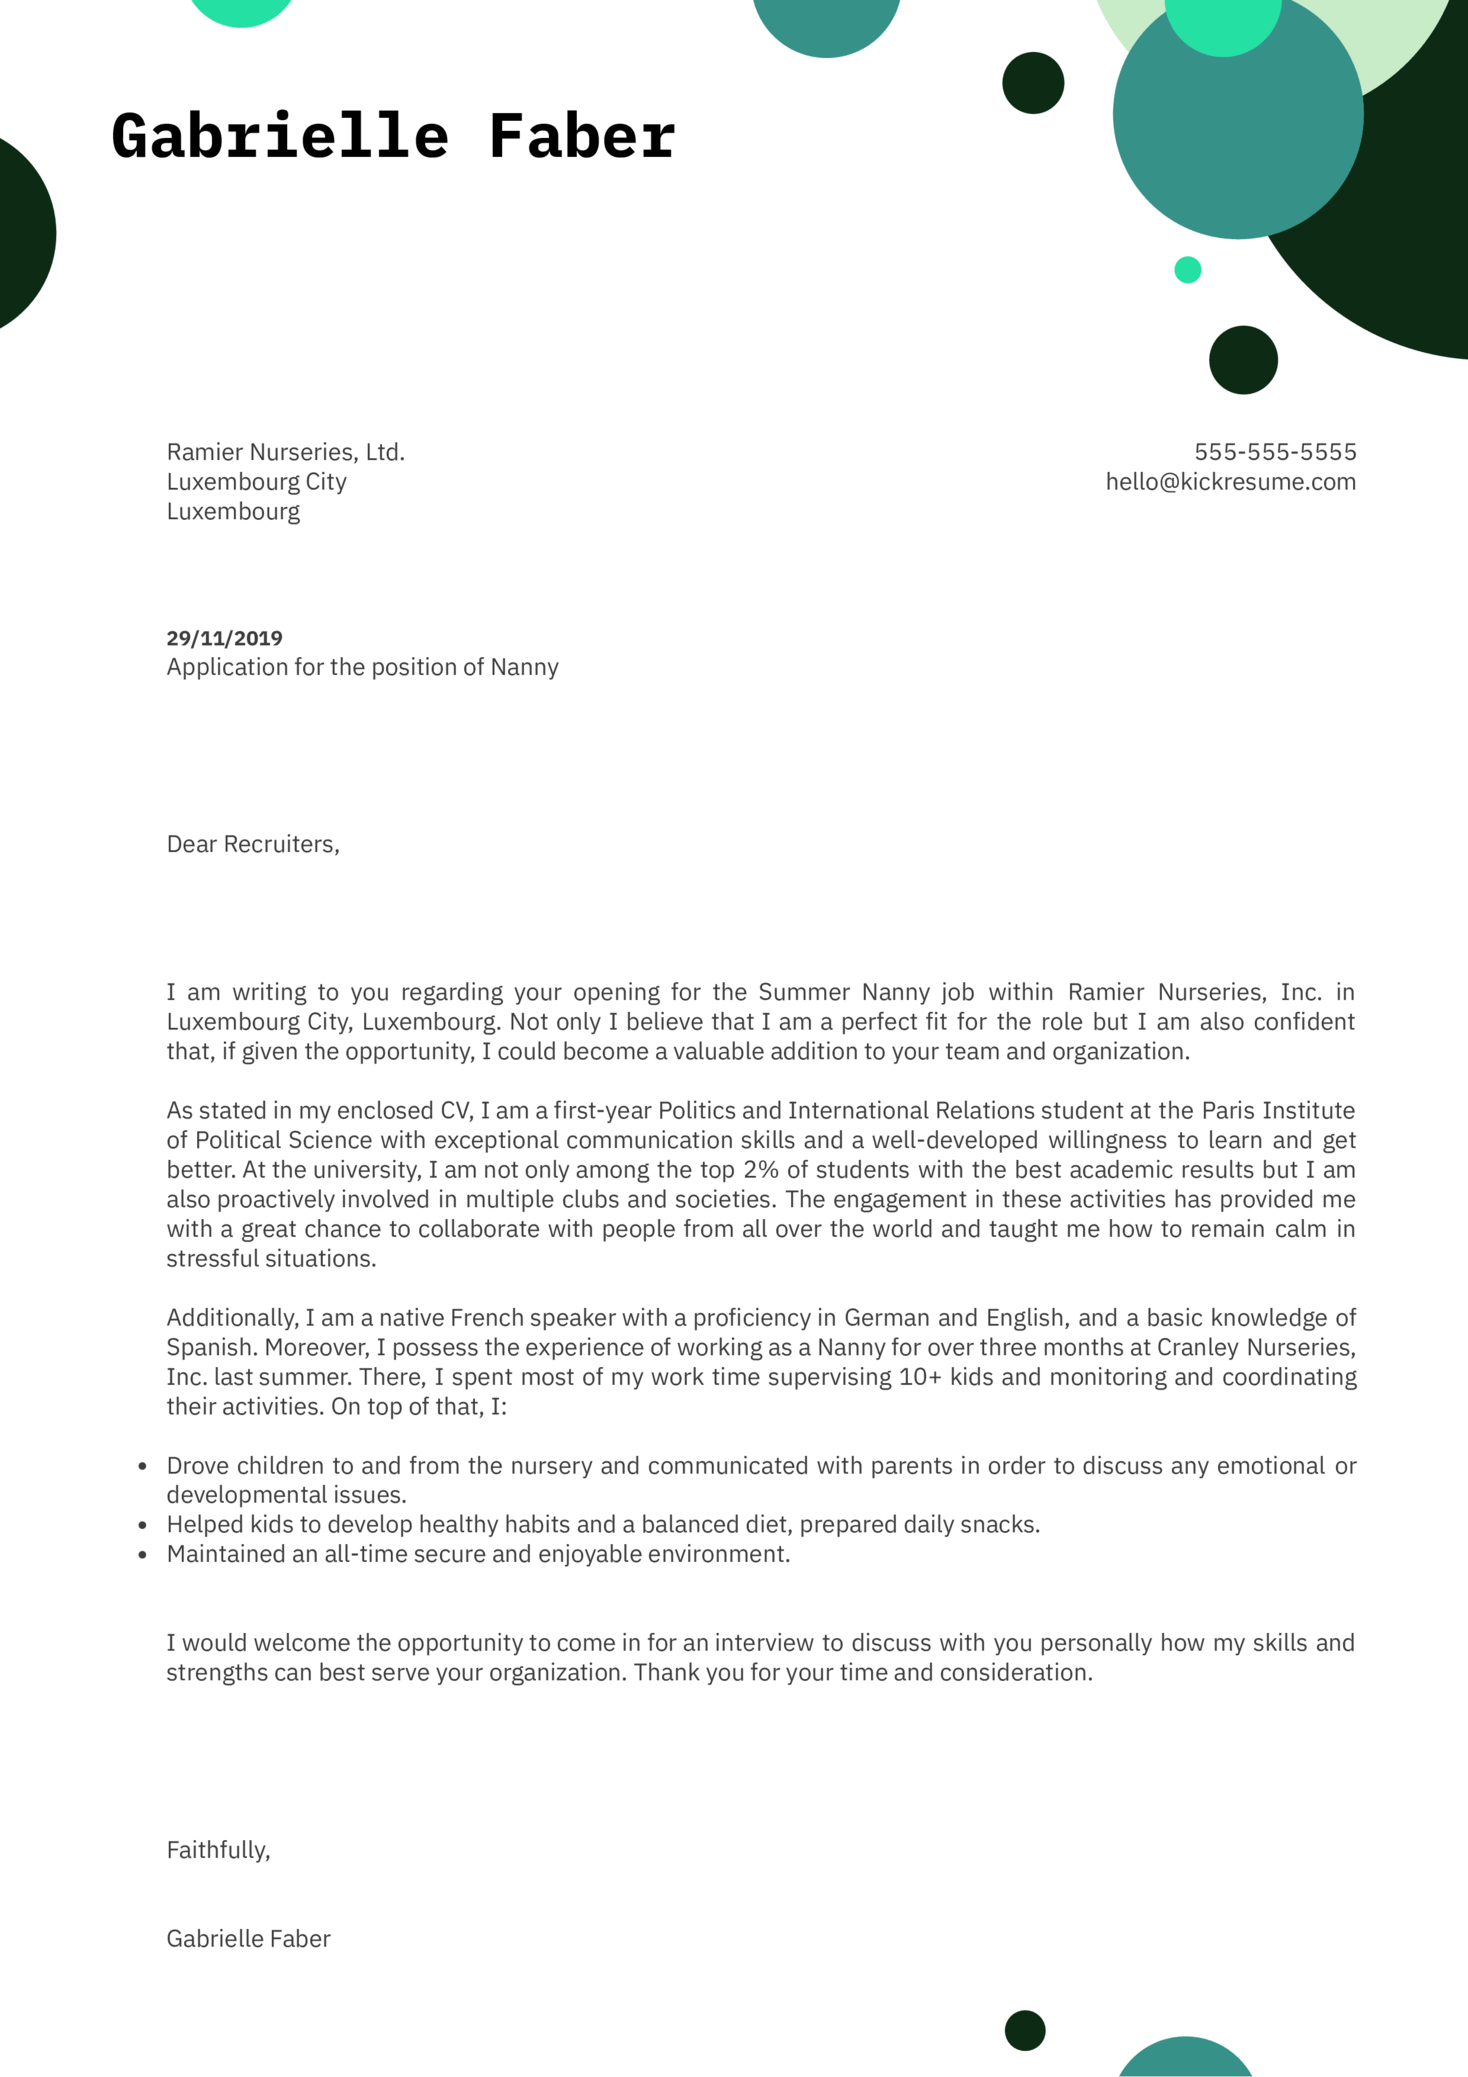 Opening Letter For Job Application from s3-eu-west-1.amazonaws.com